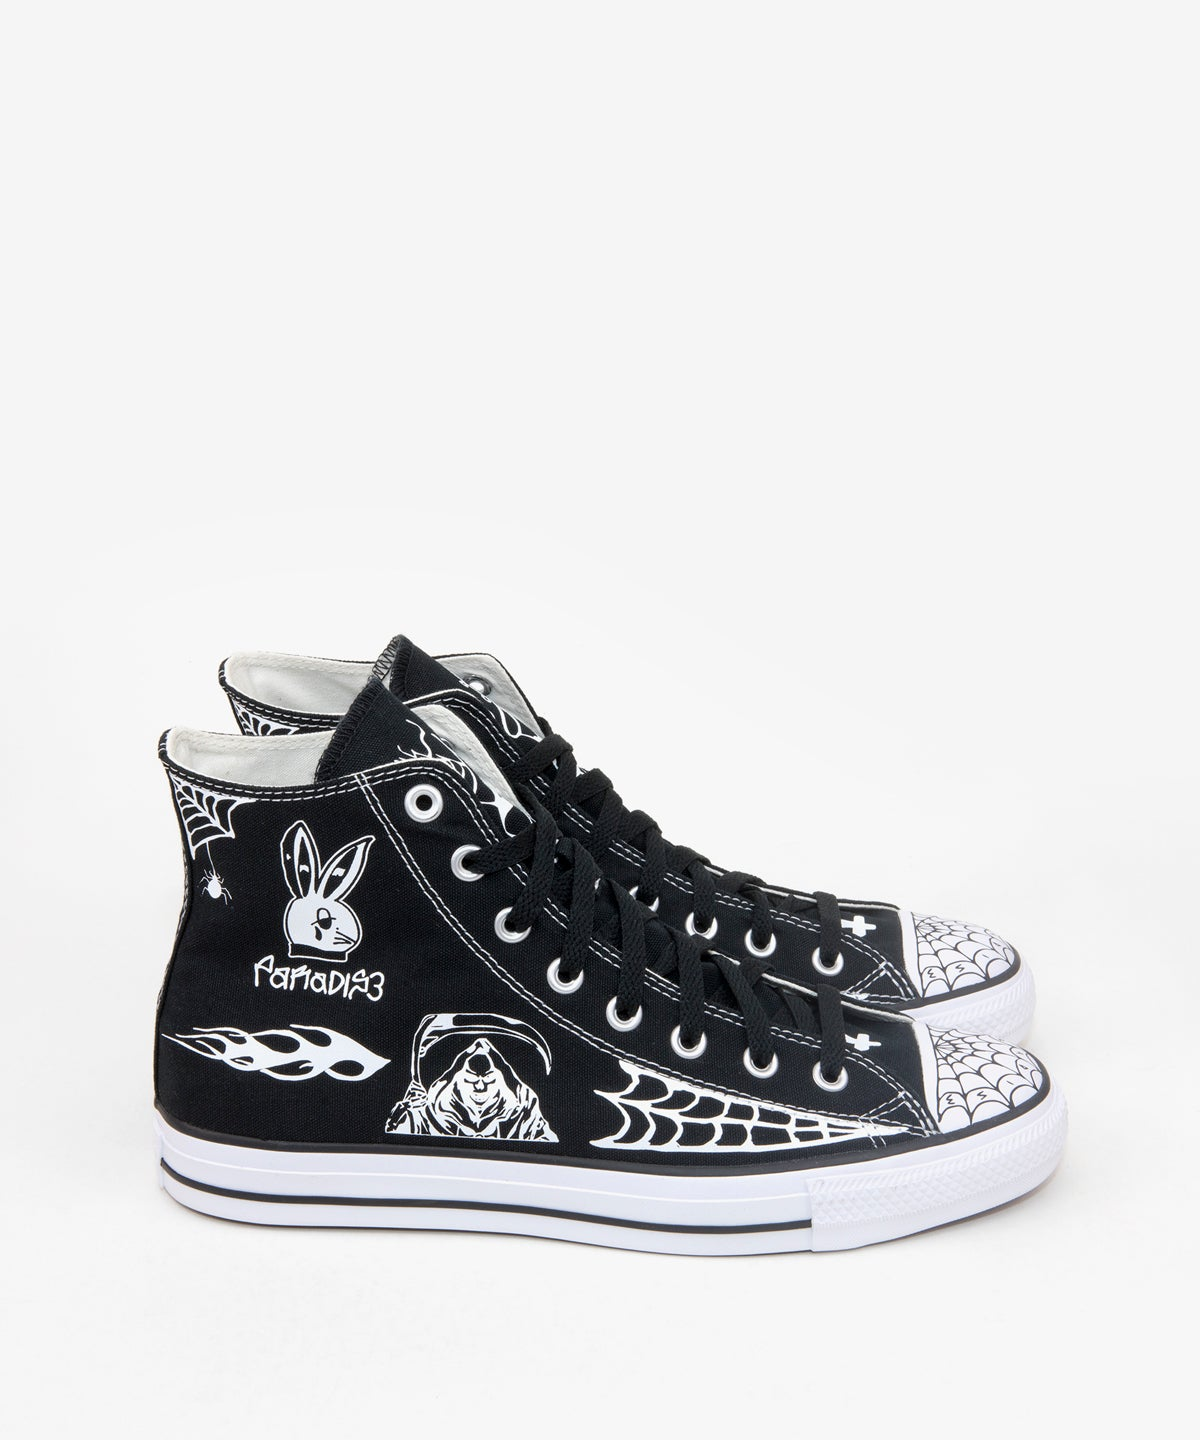 Image of CONVERSE CONS_CTAS PRO HI (SP) :::BLACK:::